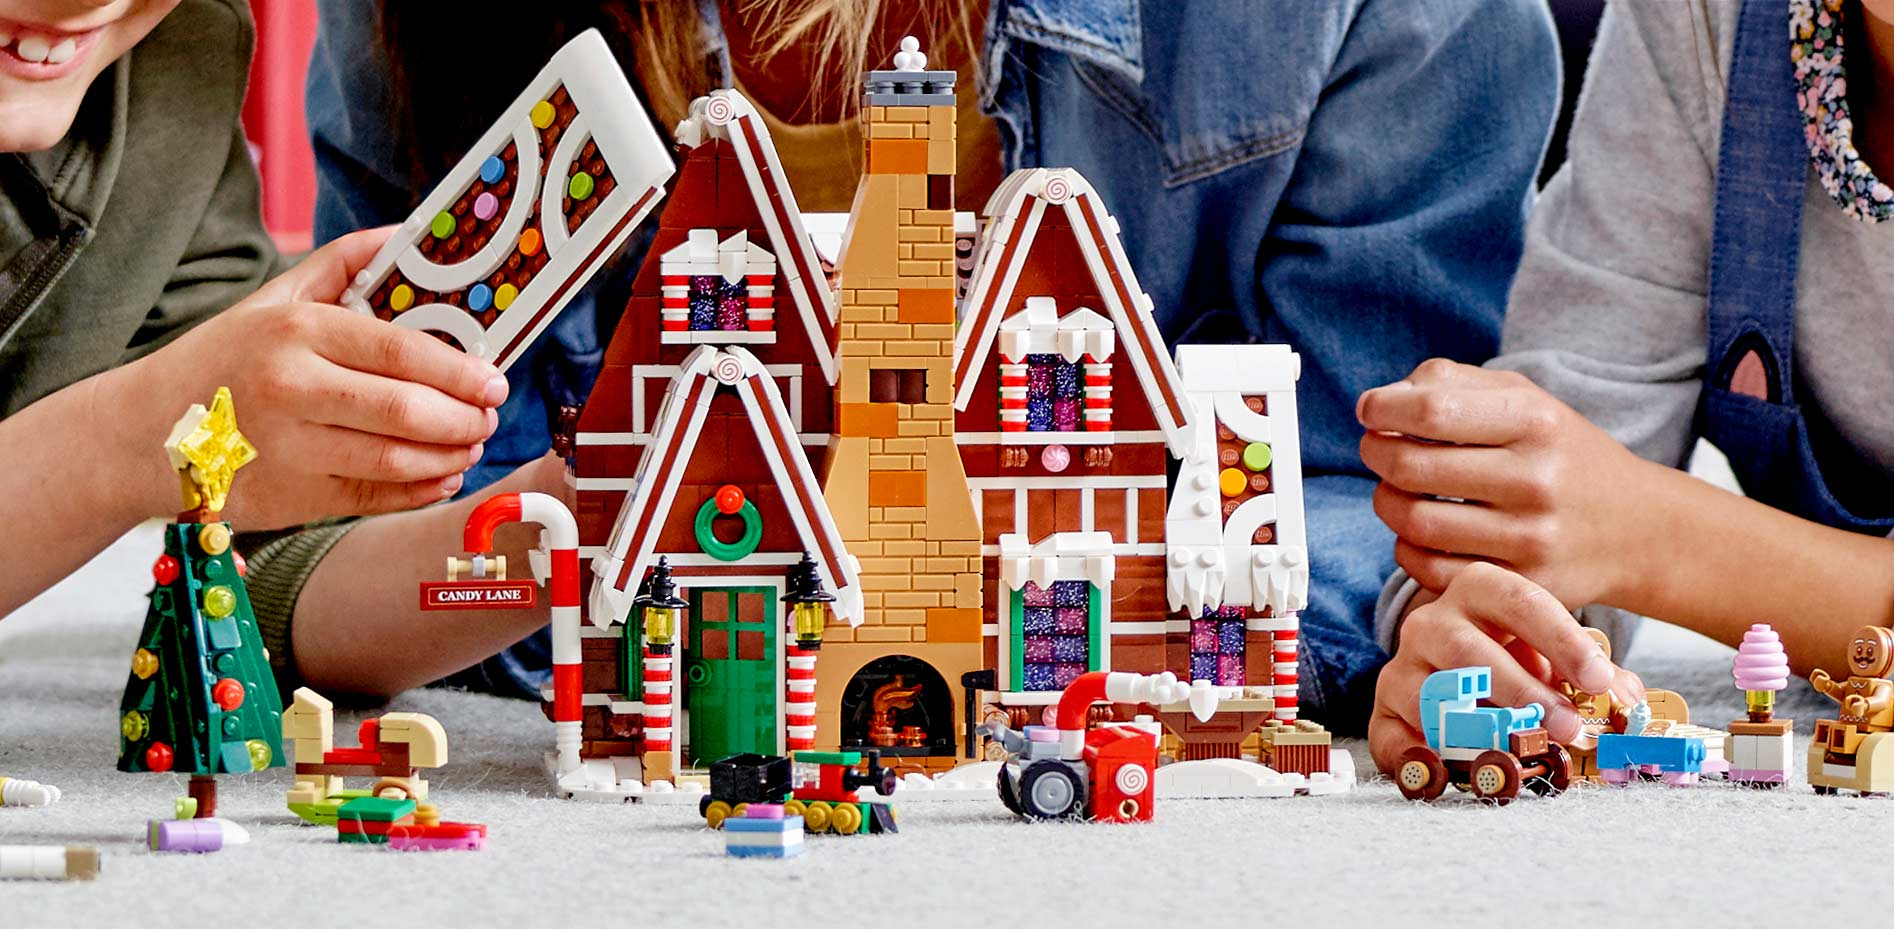 Lego Christmas Set 2019.Lego Creator Expert Gingerbread House Has Another Toilet